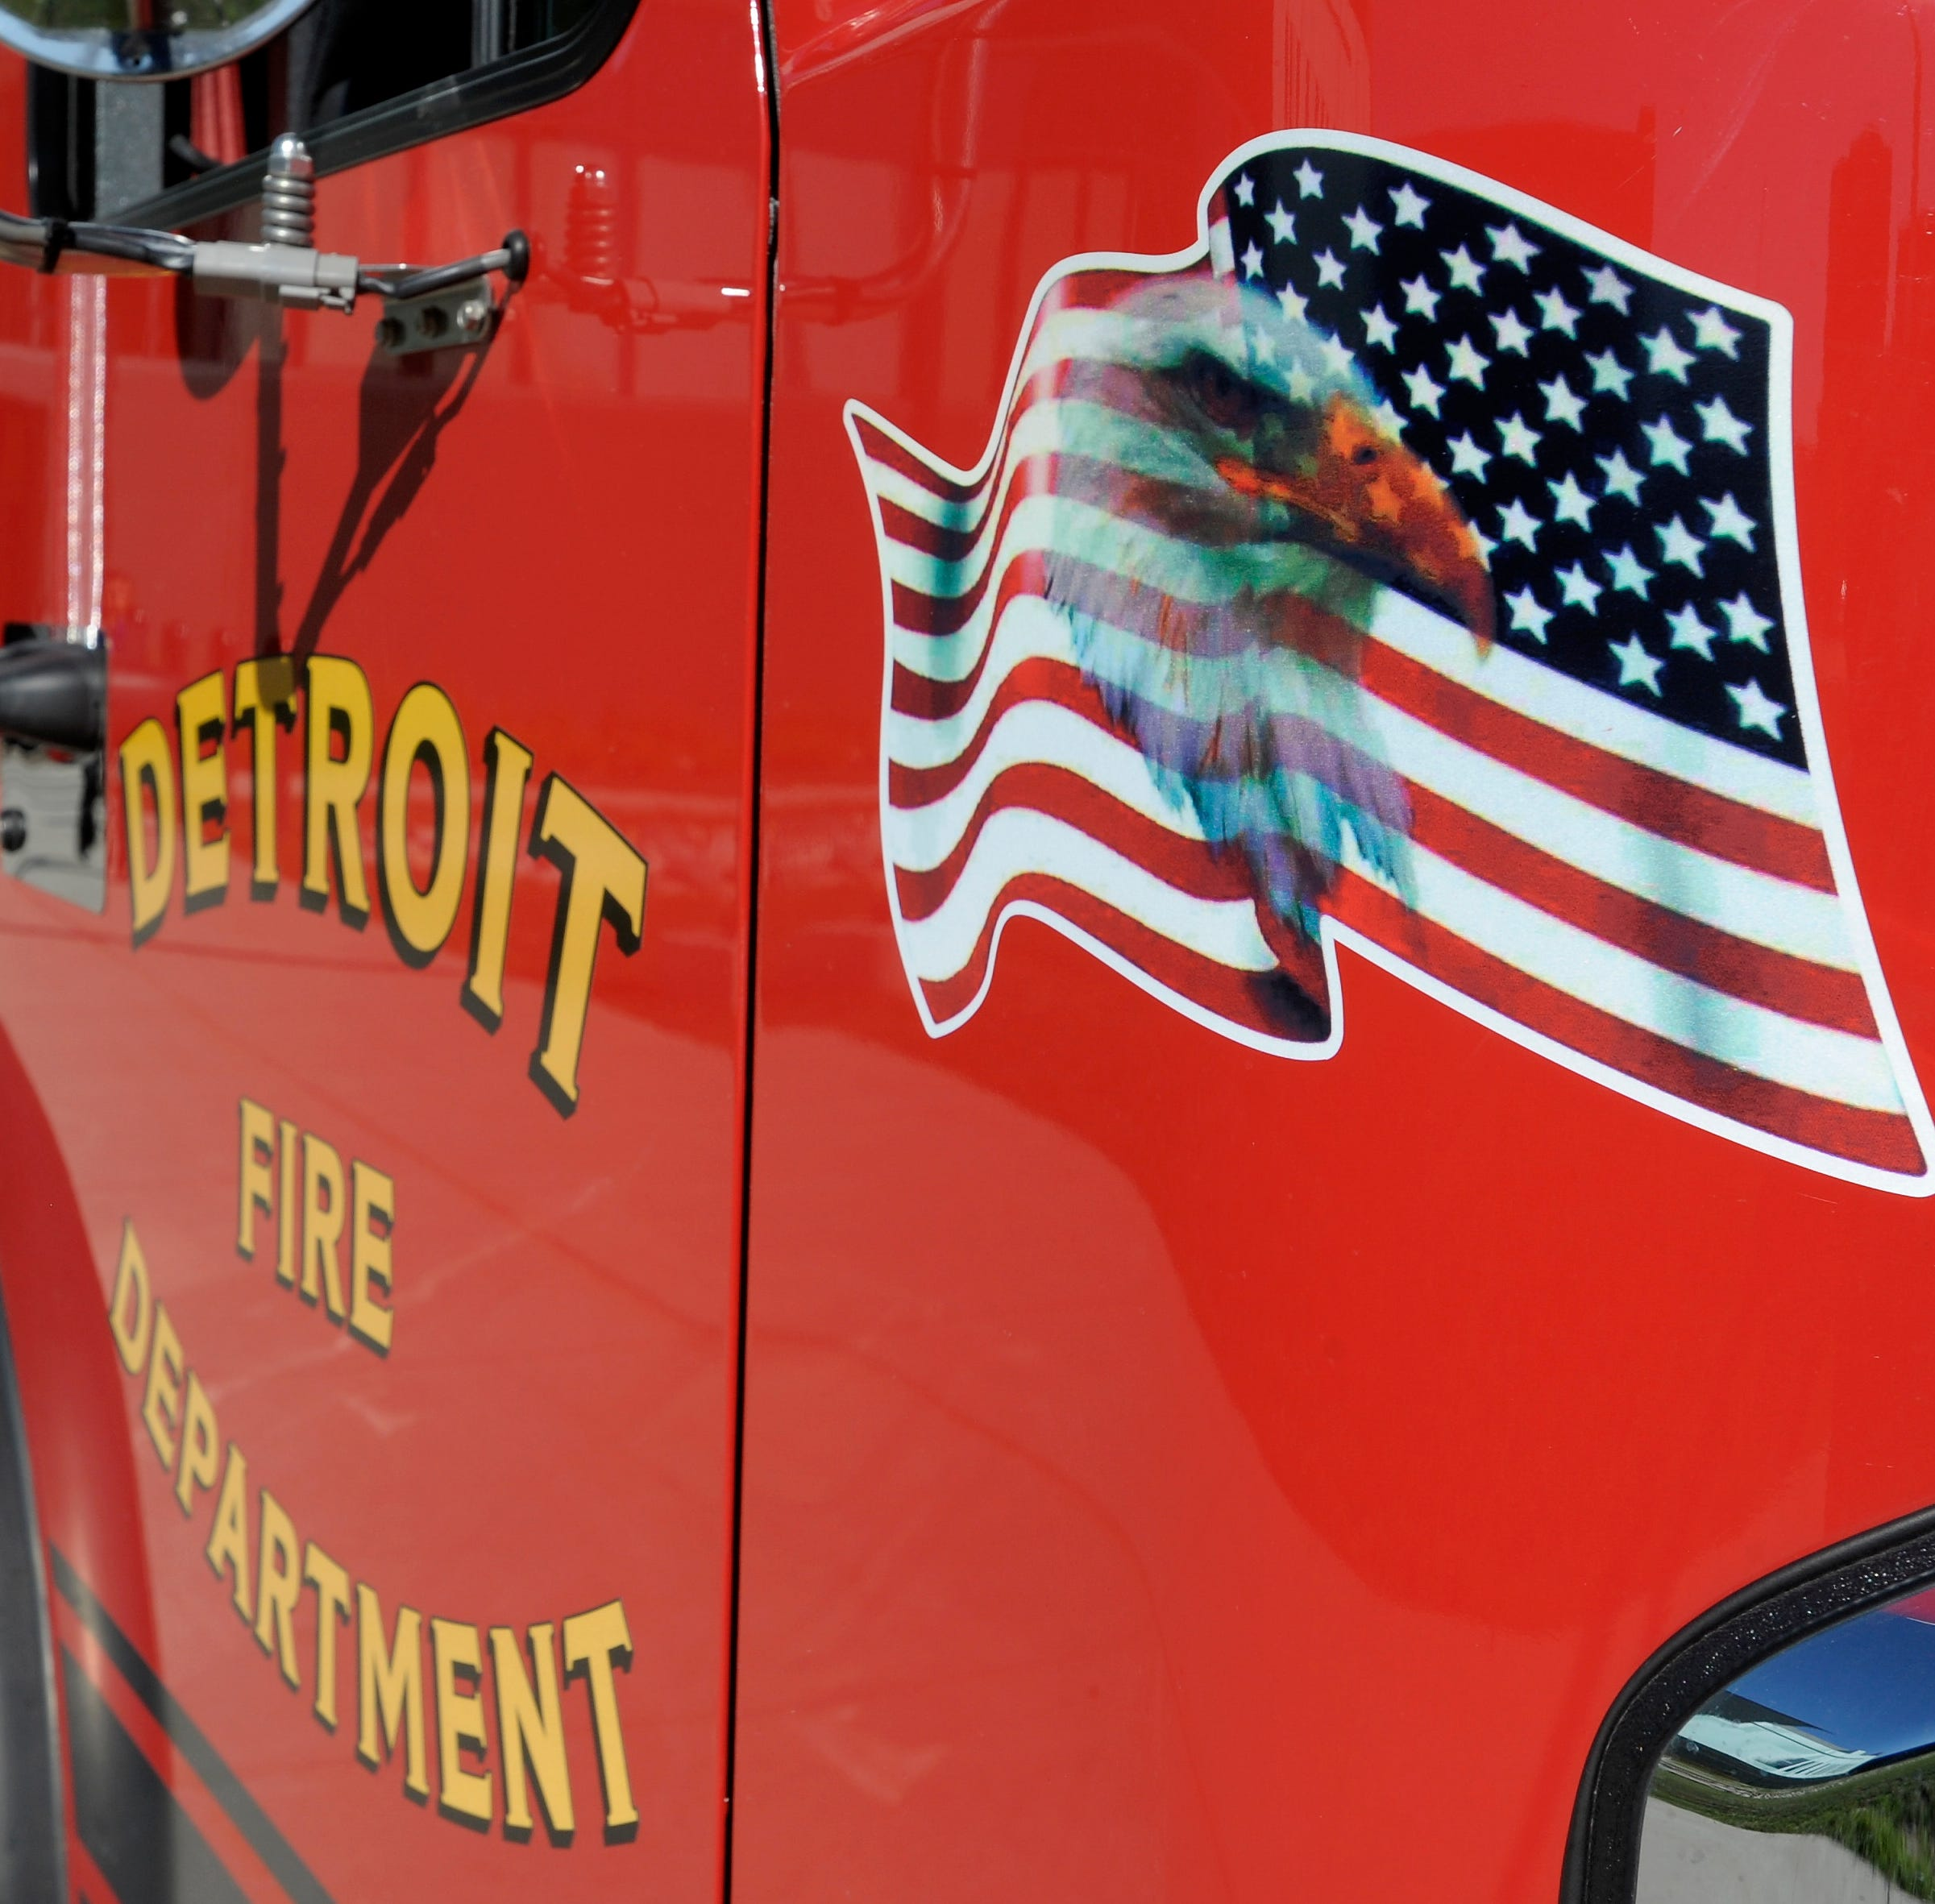 Detroit firefighter found dead in home, 'definitely a murder'